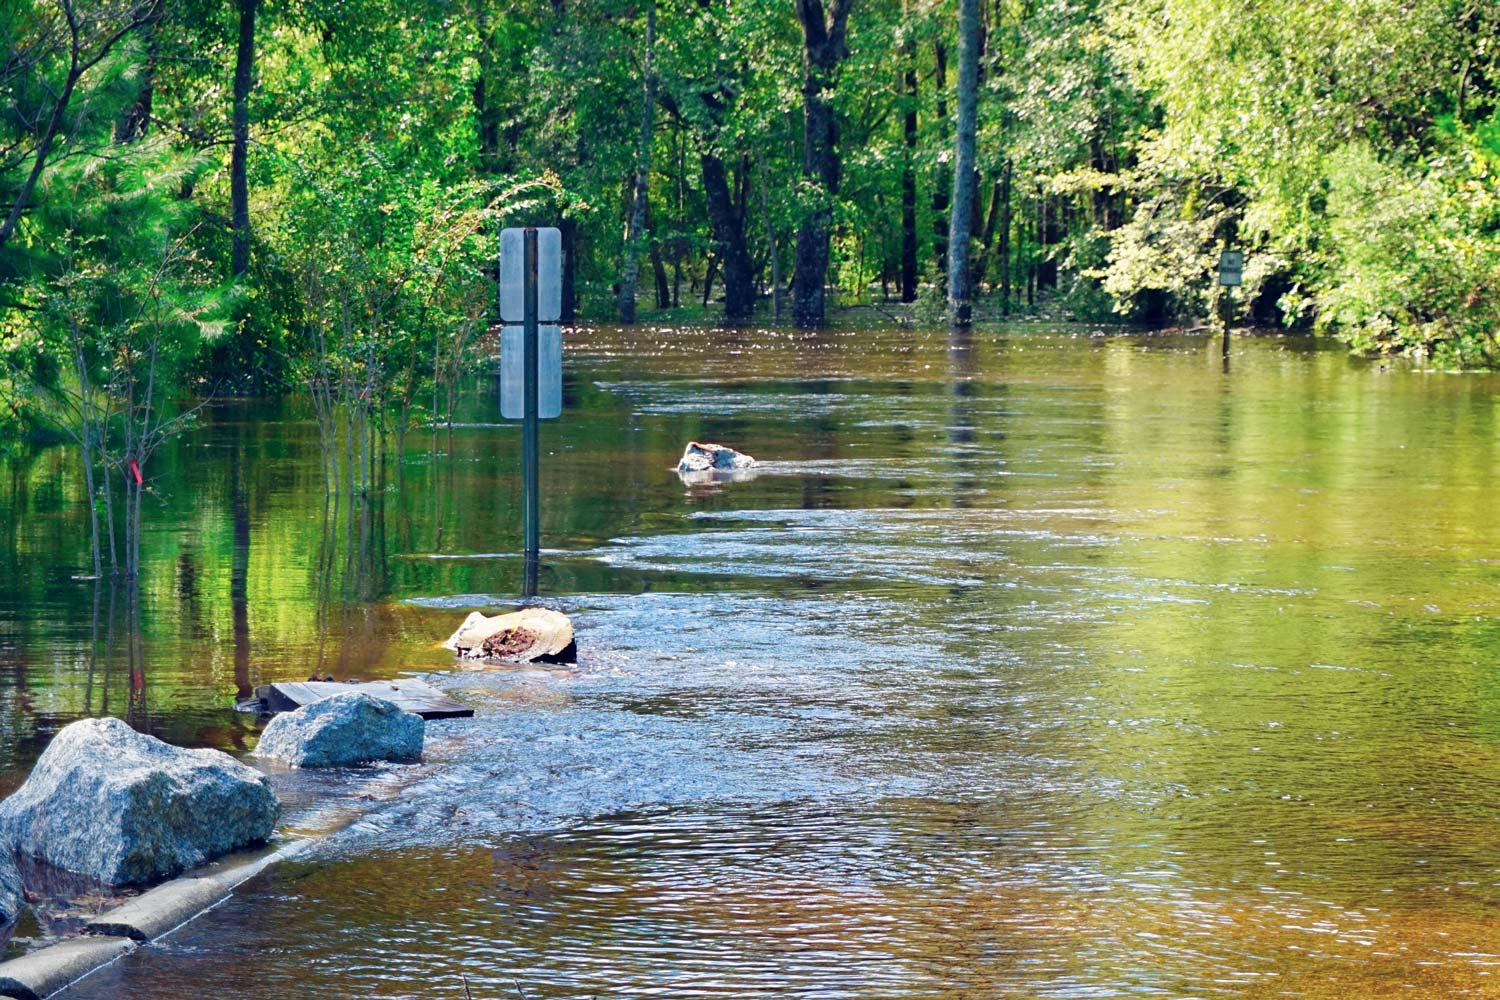 Extensive coastal and inland flooding – as occurred in North and South Carolina after Hurricane Florence struck – is expected to increase as the climate changes.